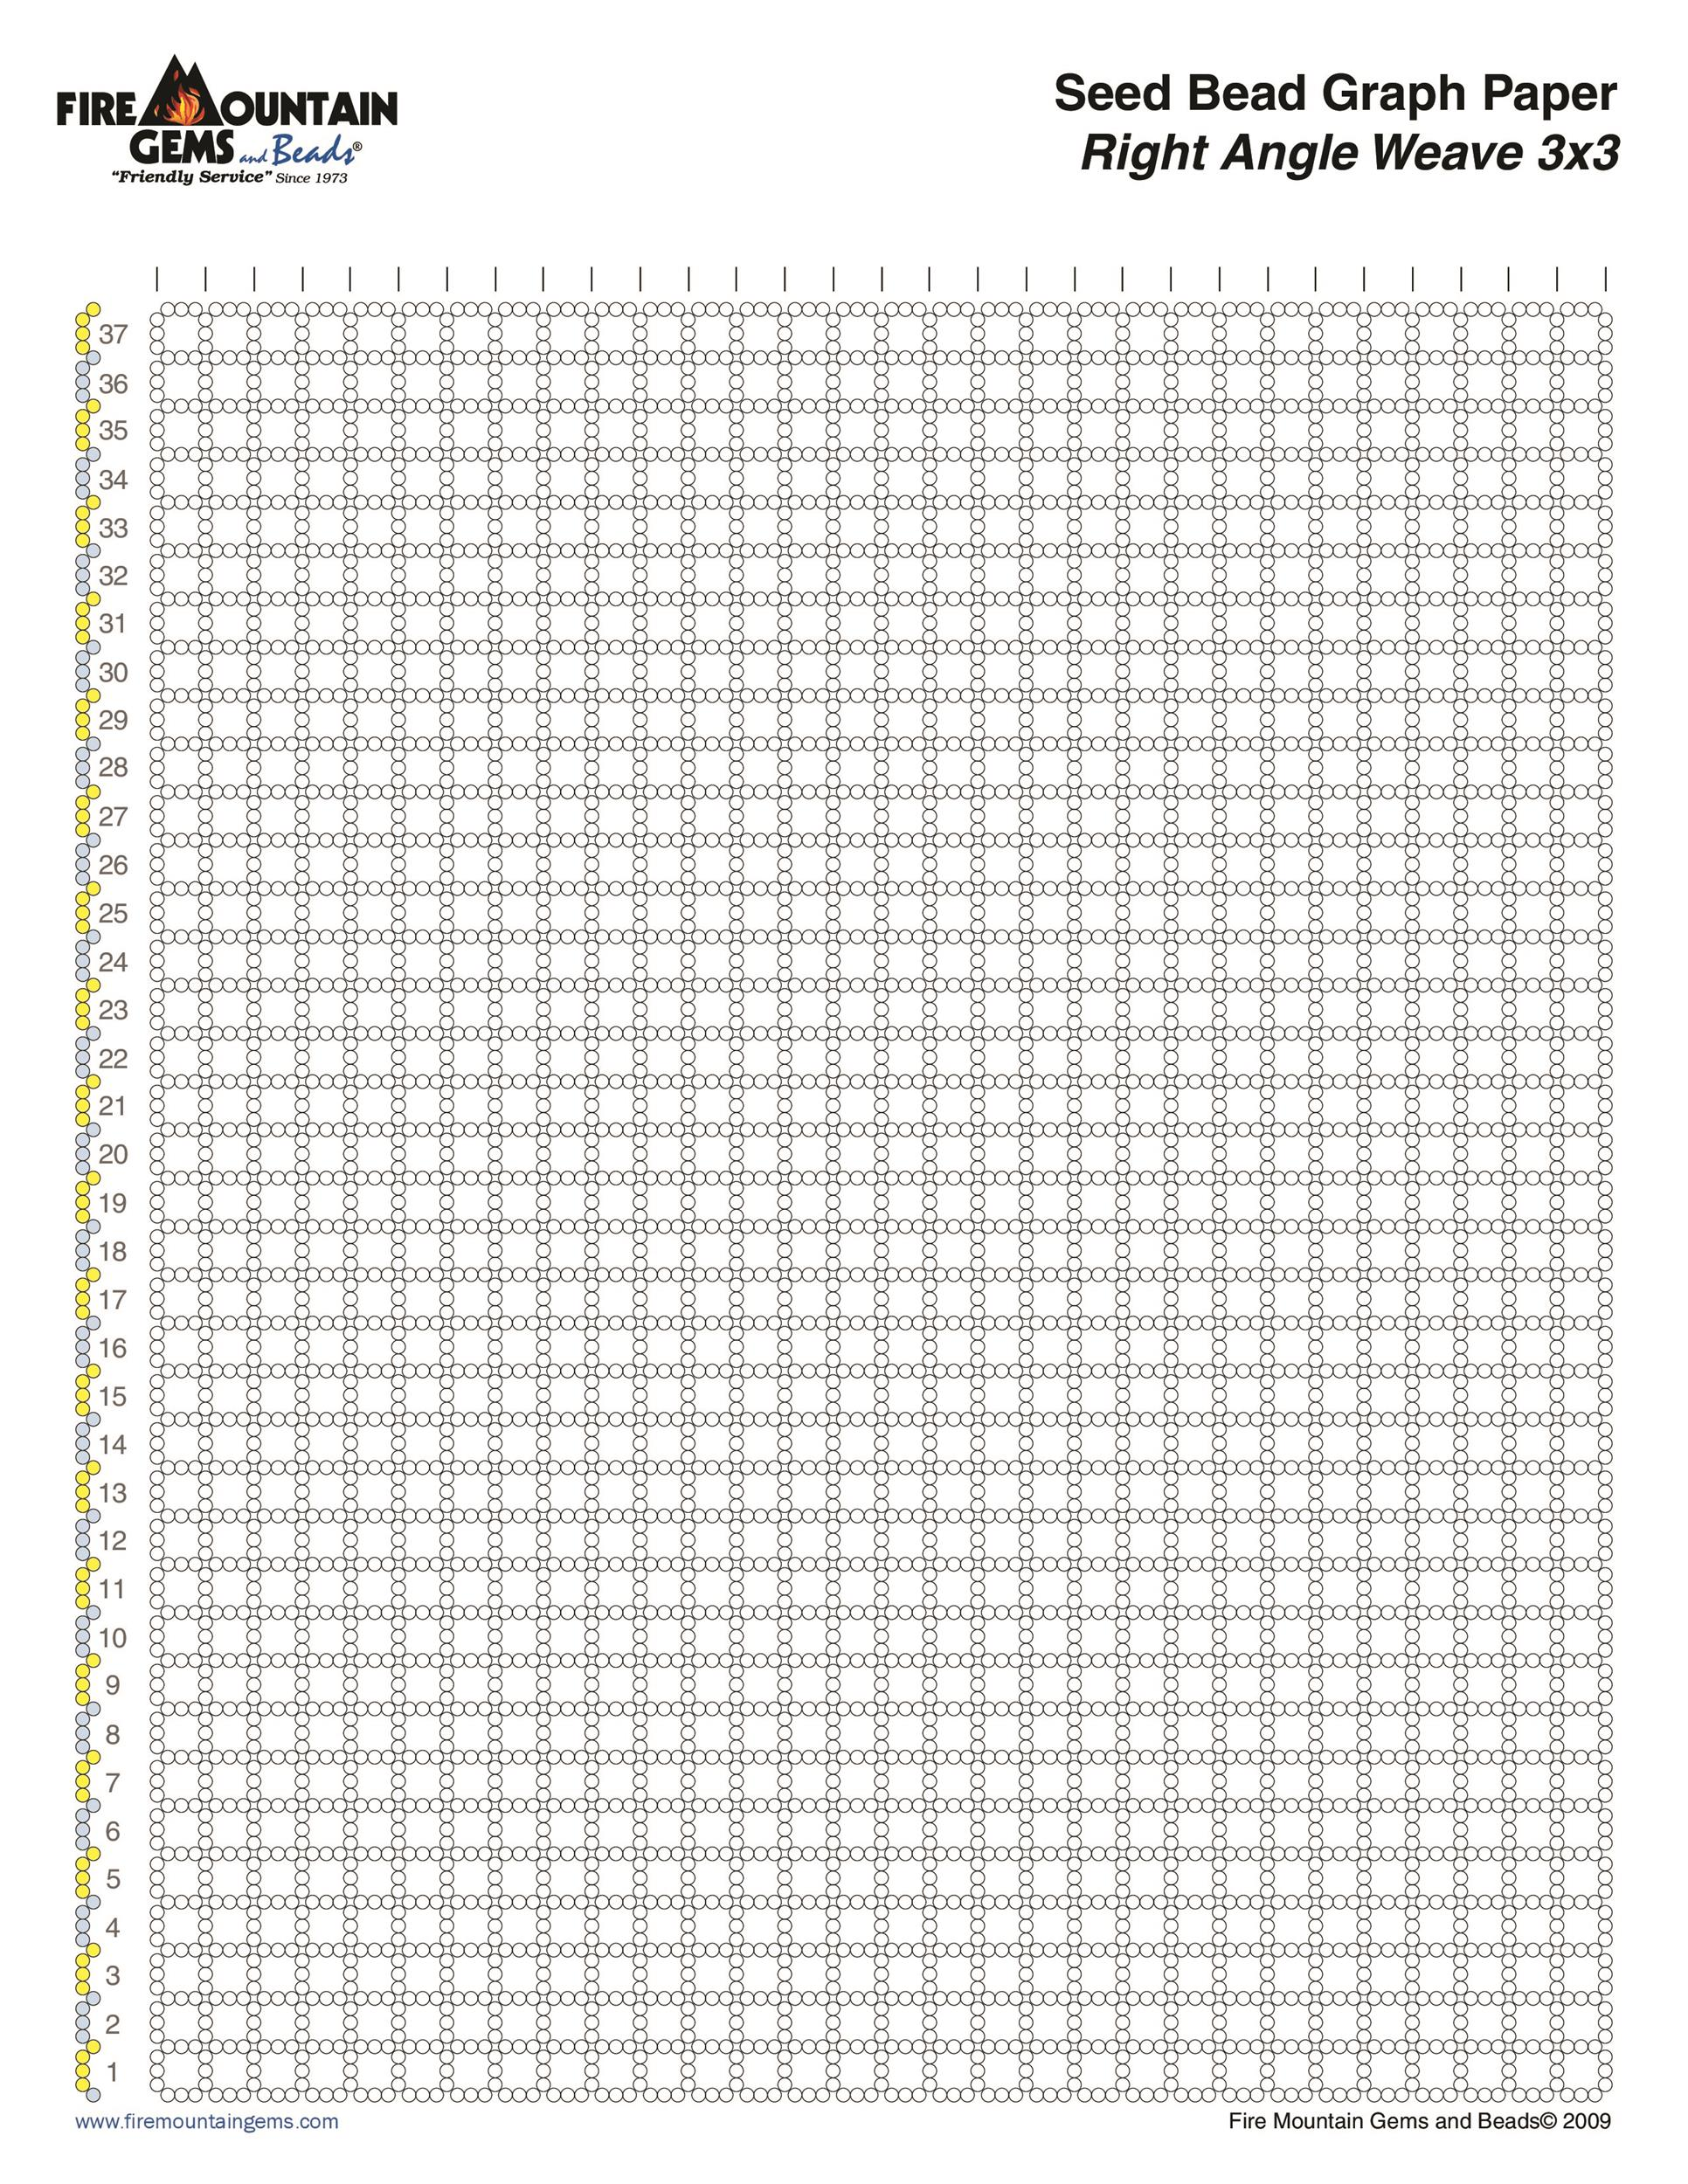 worksheet Line Graph Template Printable 30 free printable graph paper templates word pdf template lab 08